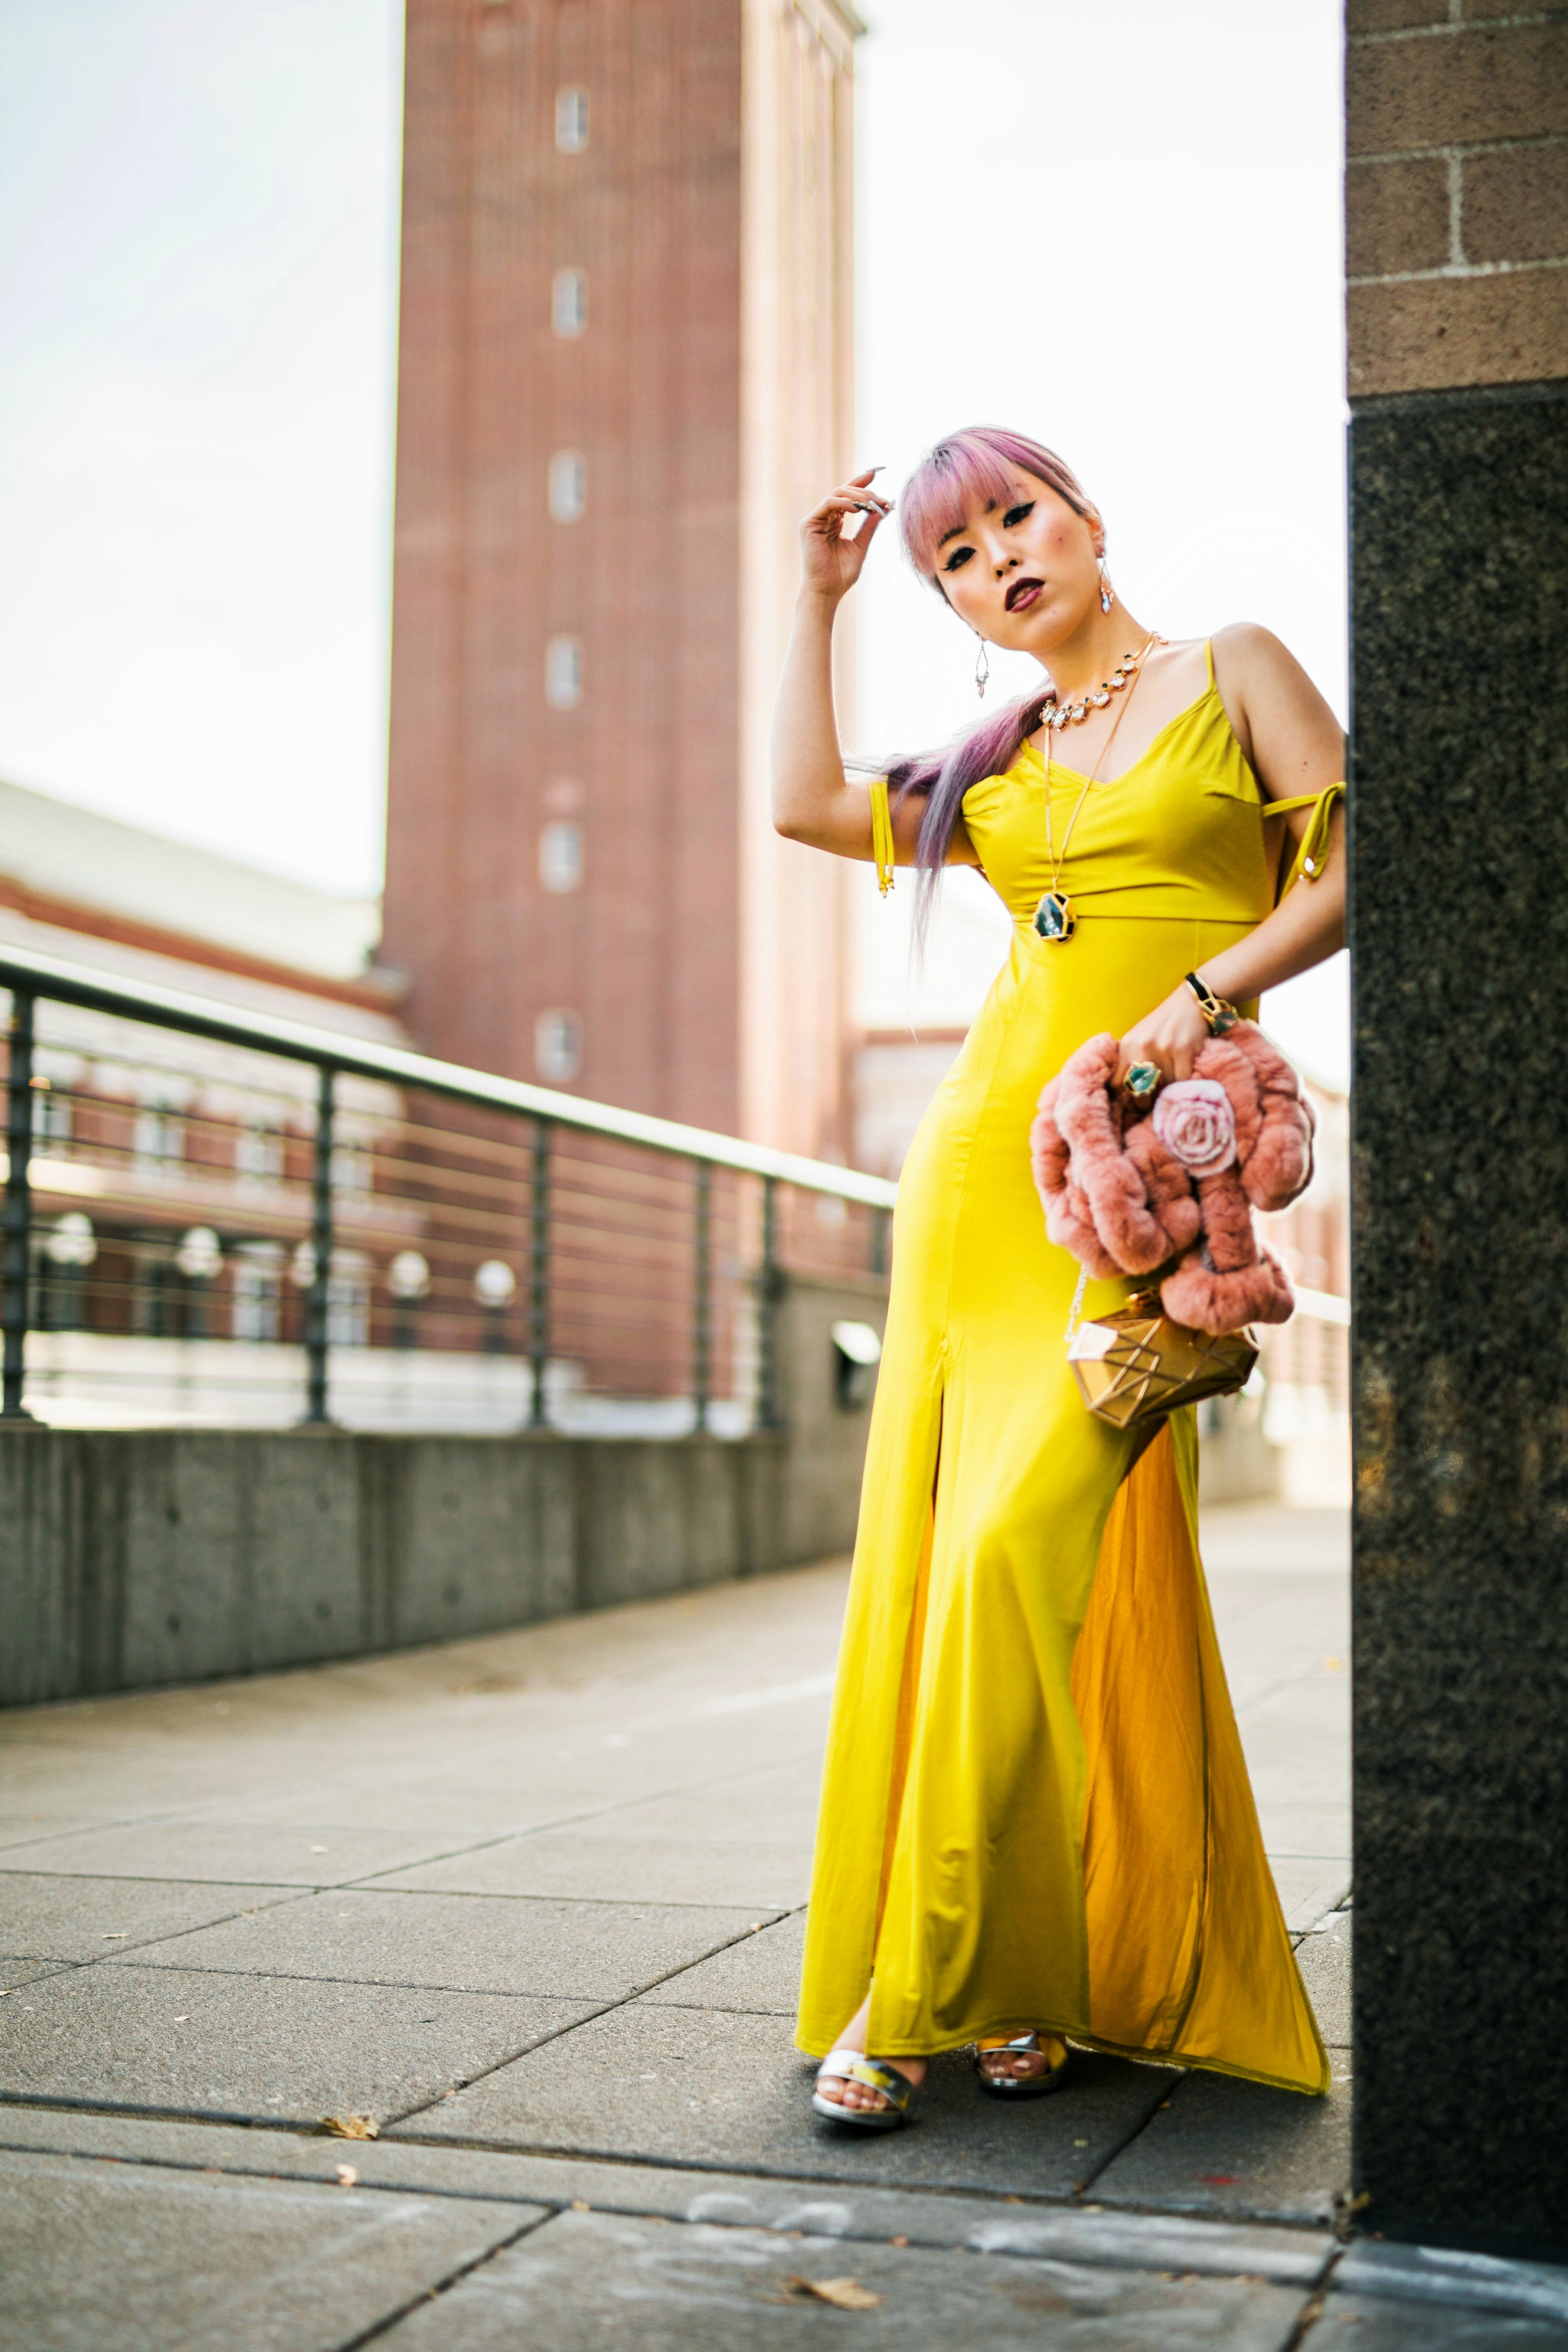 Nasty Gal yellow satin Long Term Maxi Dress-Zara Silver heeled sandals-Swarovski Rose Gold-Tone Crystal Chandelier Earrings-Huge Ring, Multi-colored, Gold plating-Swarovski Rose Goldplated Crystaldust Cross Ring-Swarovski Pave Crystal Pendant Necklace-Gold Clutch-Pink faux fur scarf-pink hair-settle fashion style blogger-petite-japanese-aika's love closet 7